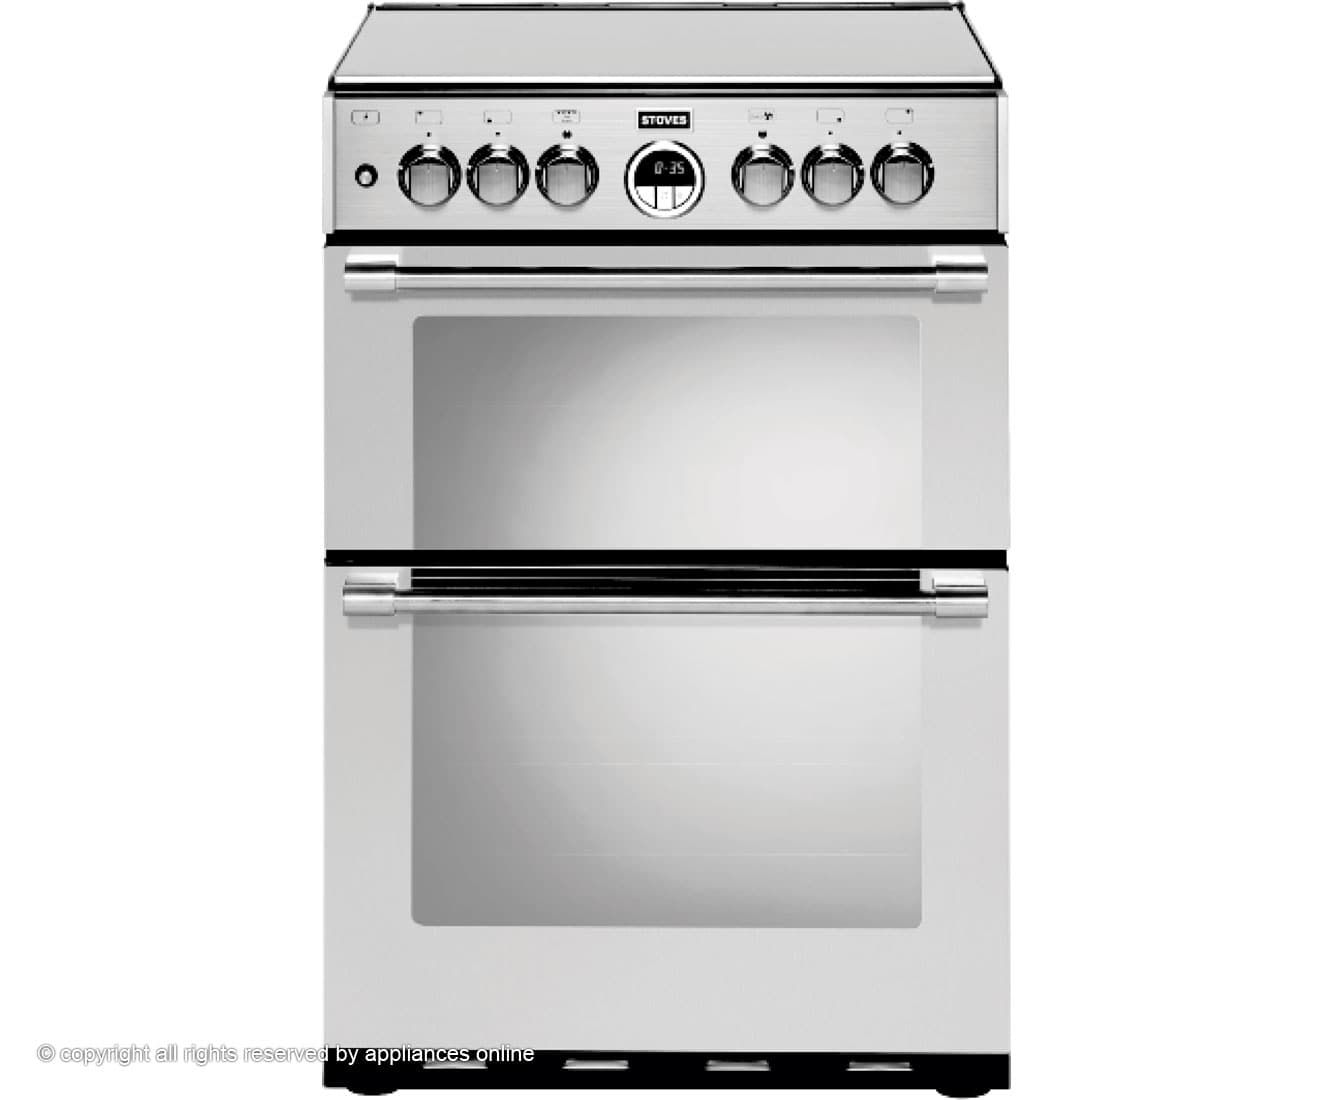 sterling600df ss   stoves dual fuel cooker   ao com sterling600df ss   stoves dual fuel cooker   ao com   kitchen      rh   pinterest com